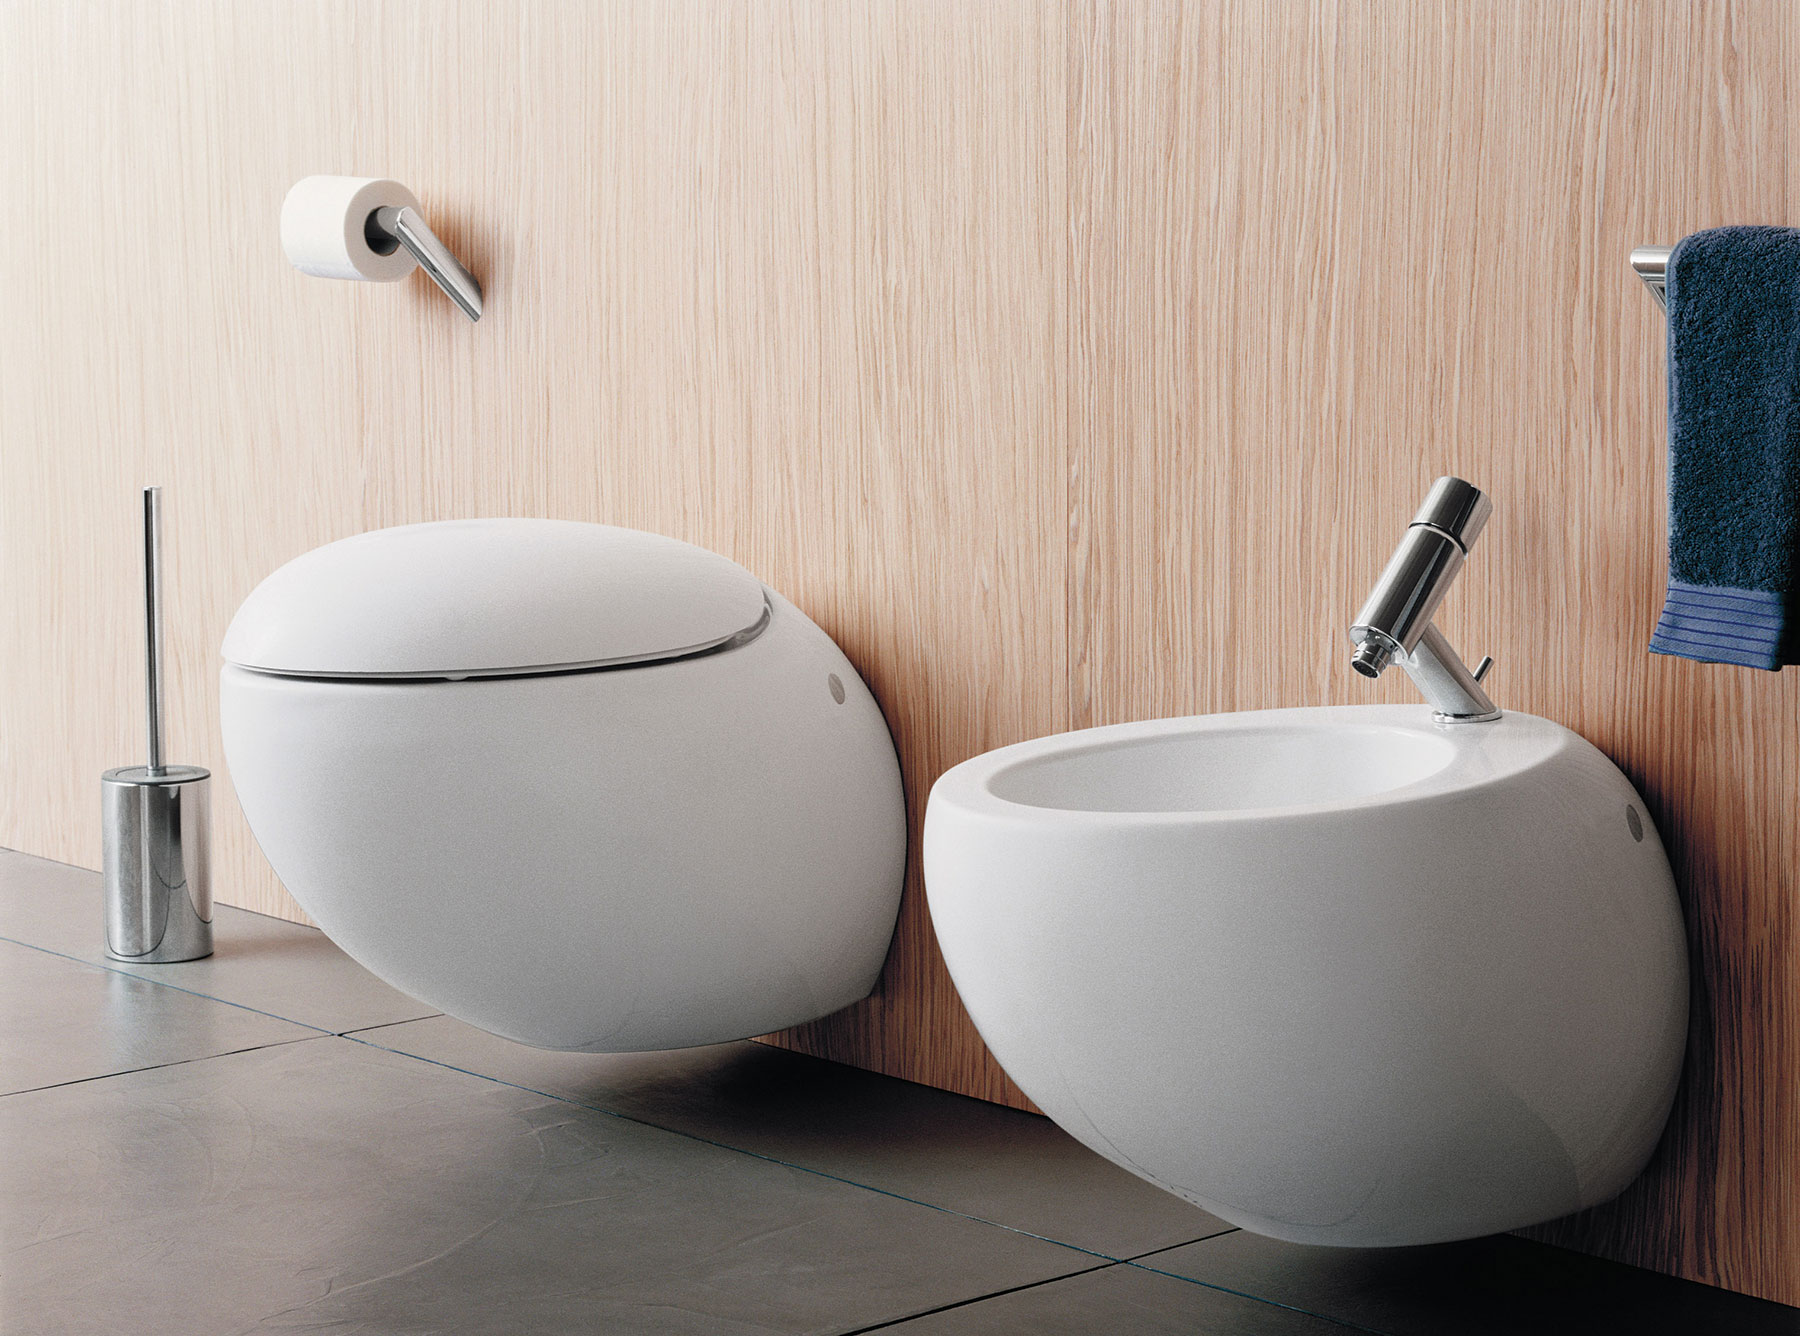 Alessi One Wall Mount Toilet first image